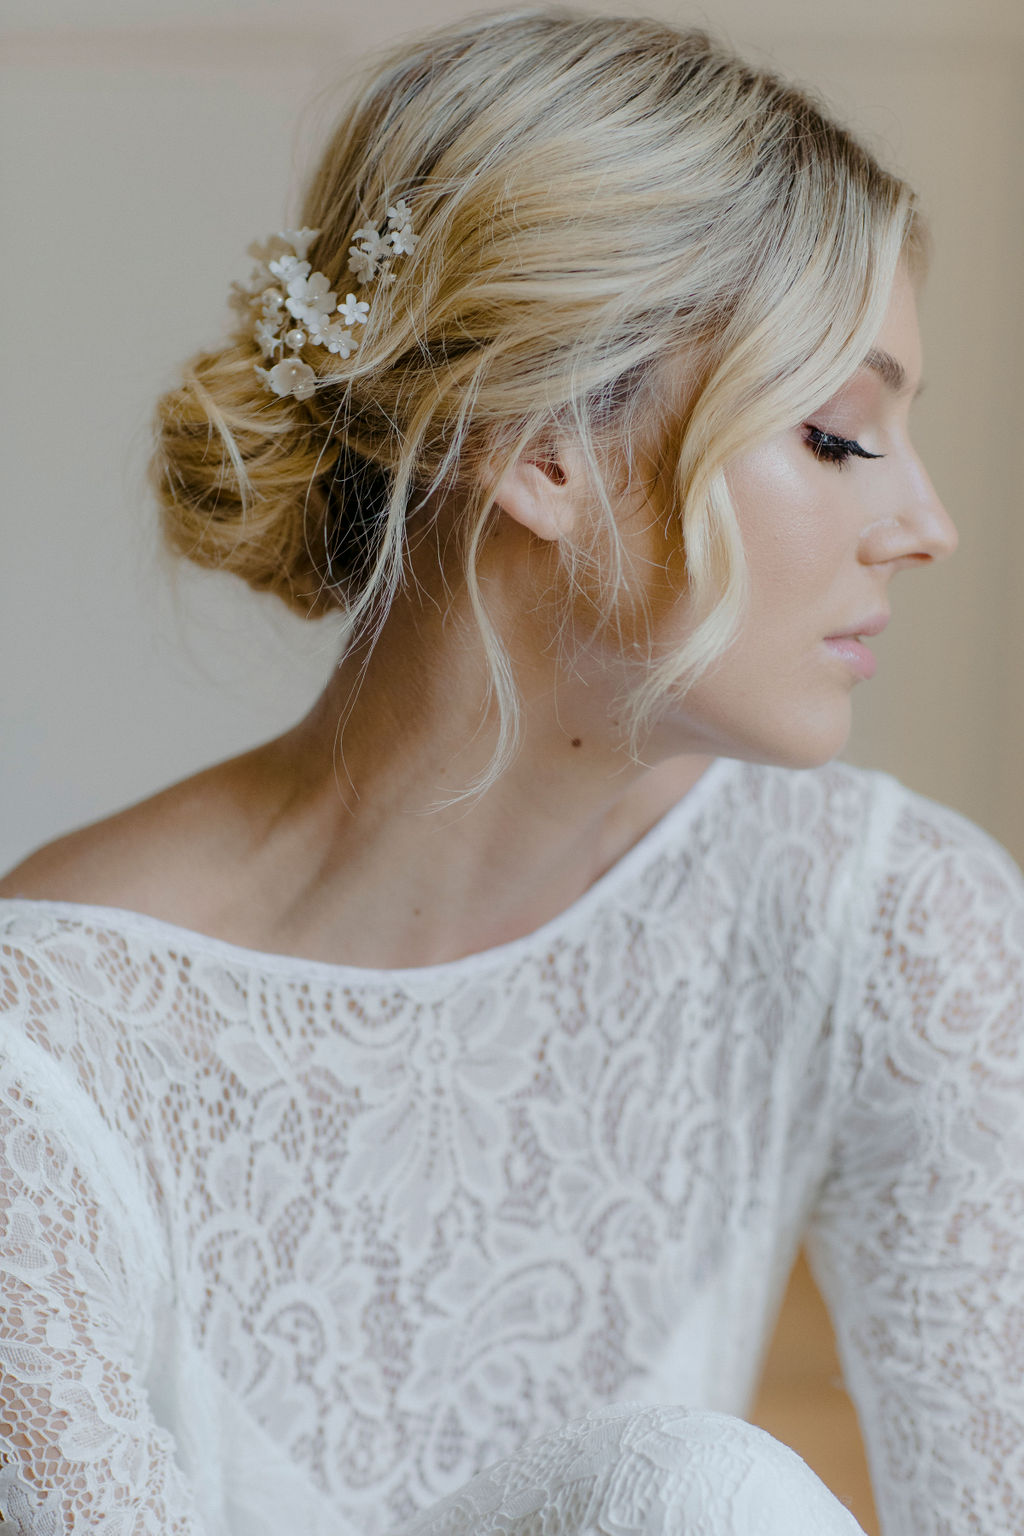 CHERRY BLOSSOM WEDDING HAIR PIECES by TANIA MARAS featured on LOVE FIND CO.